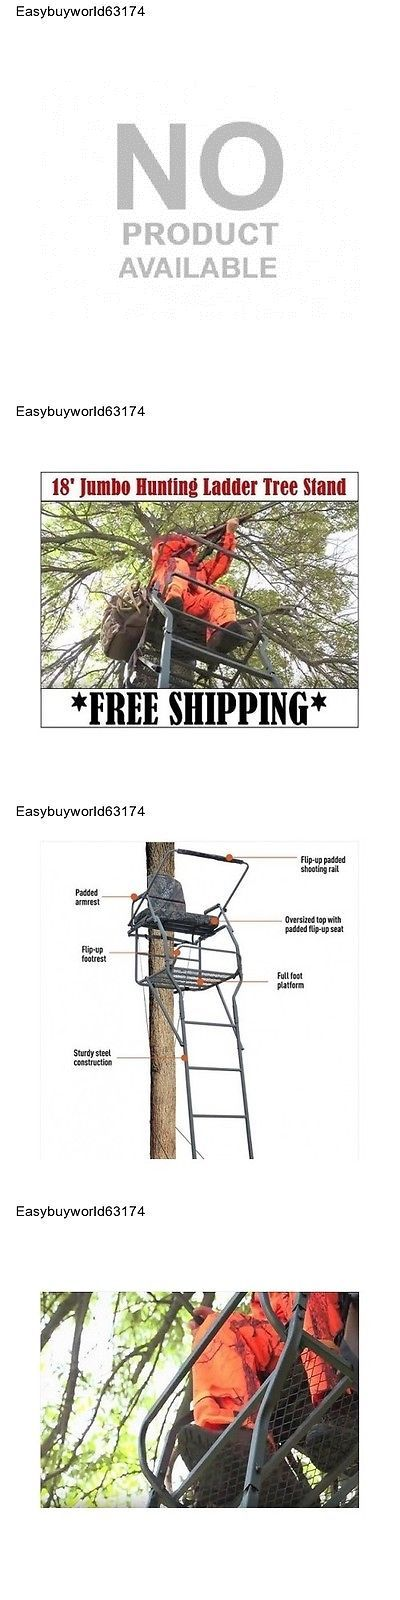 Tree Stands 52508: Deluxe 18 Ladder Tree Stand,Oversized Top Bigger Guy Hunting Deer Stand -> BUY IT NOW ONLY: $546.99 on eBay!